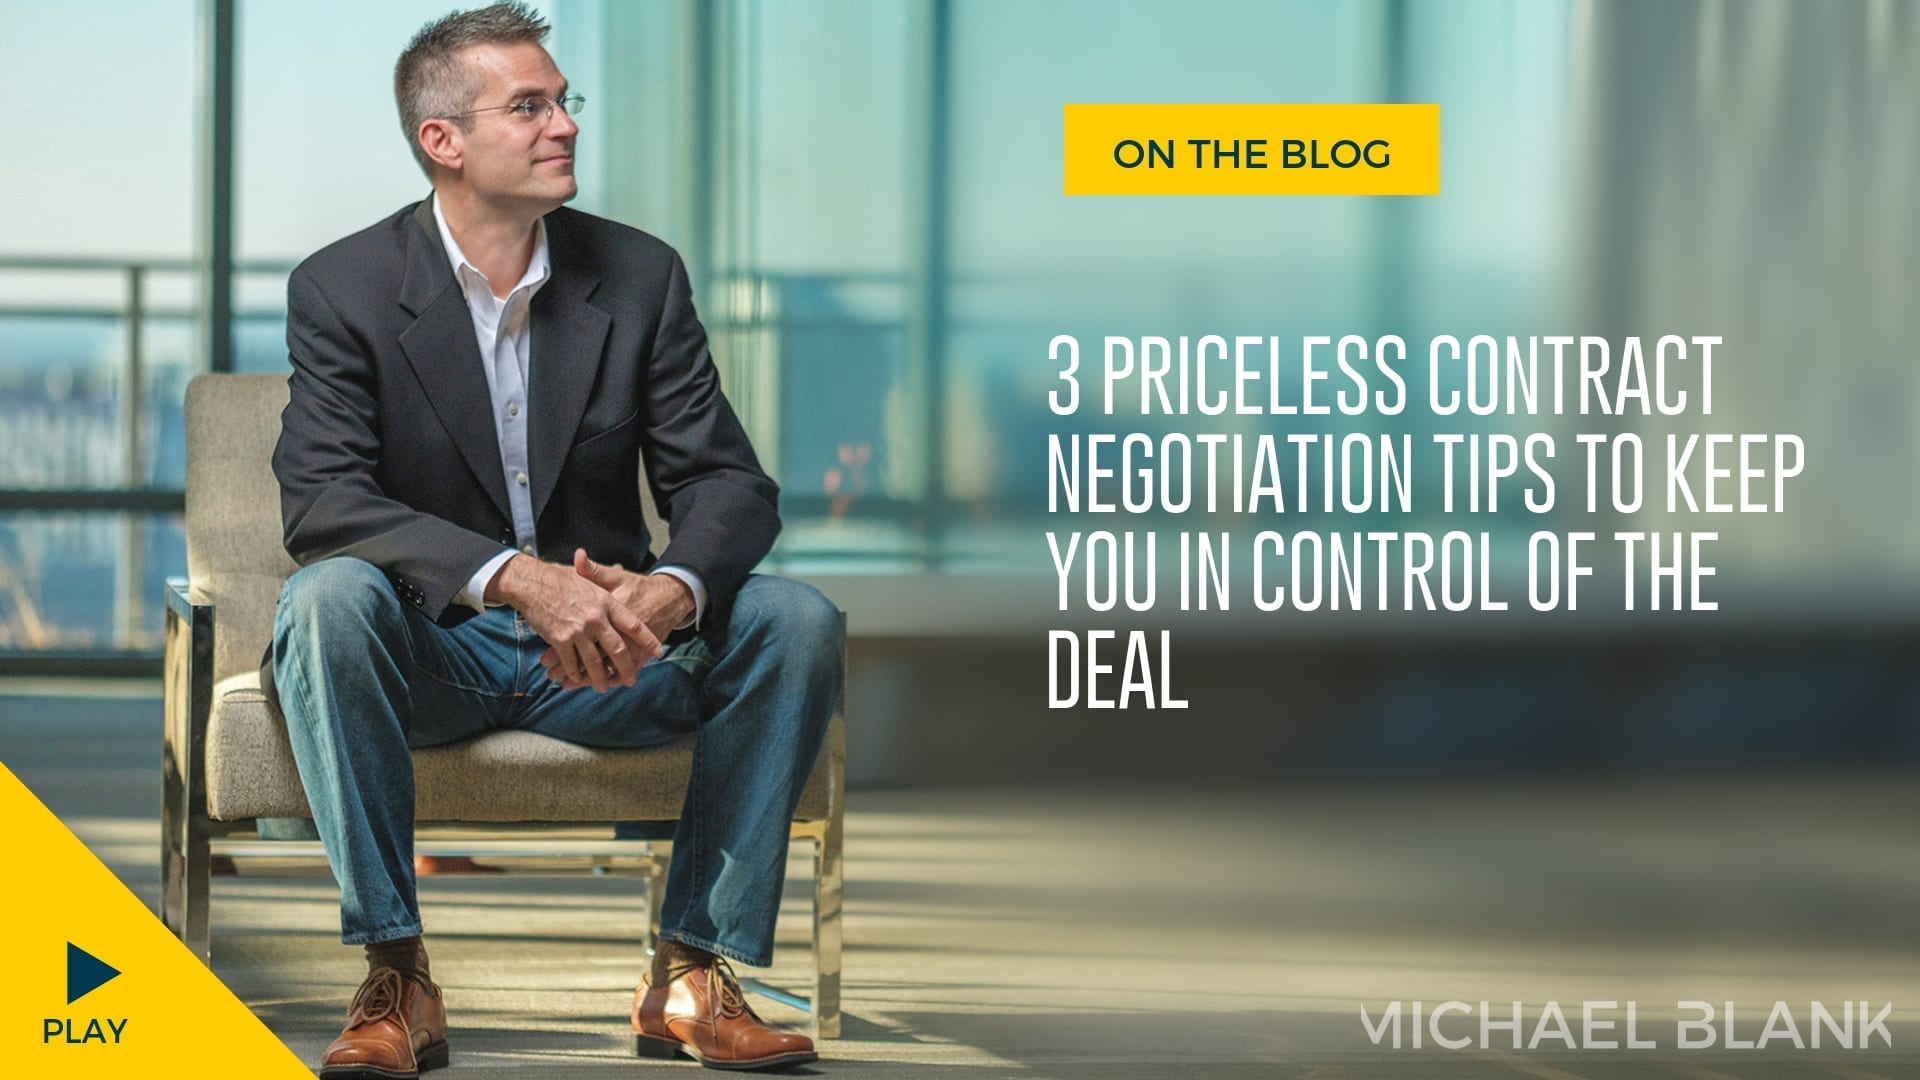 3 Priceless Contract Negotiation Tips to Keep You in Control of the Deal